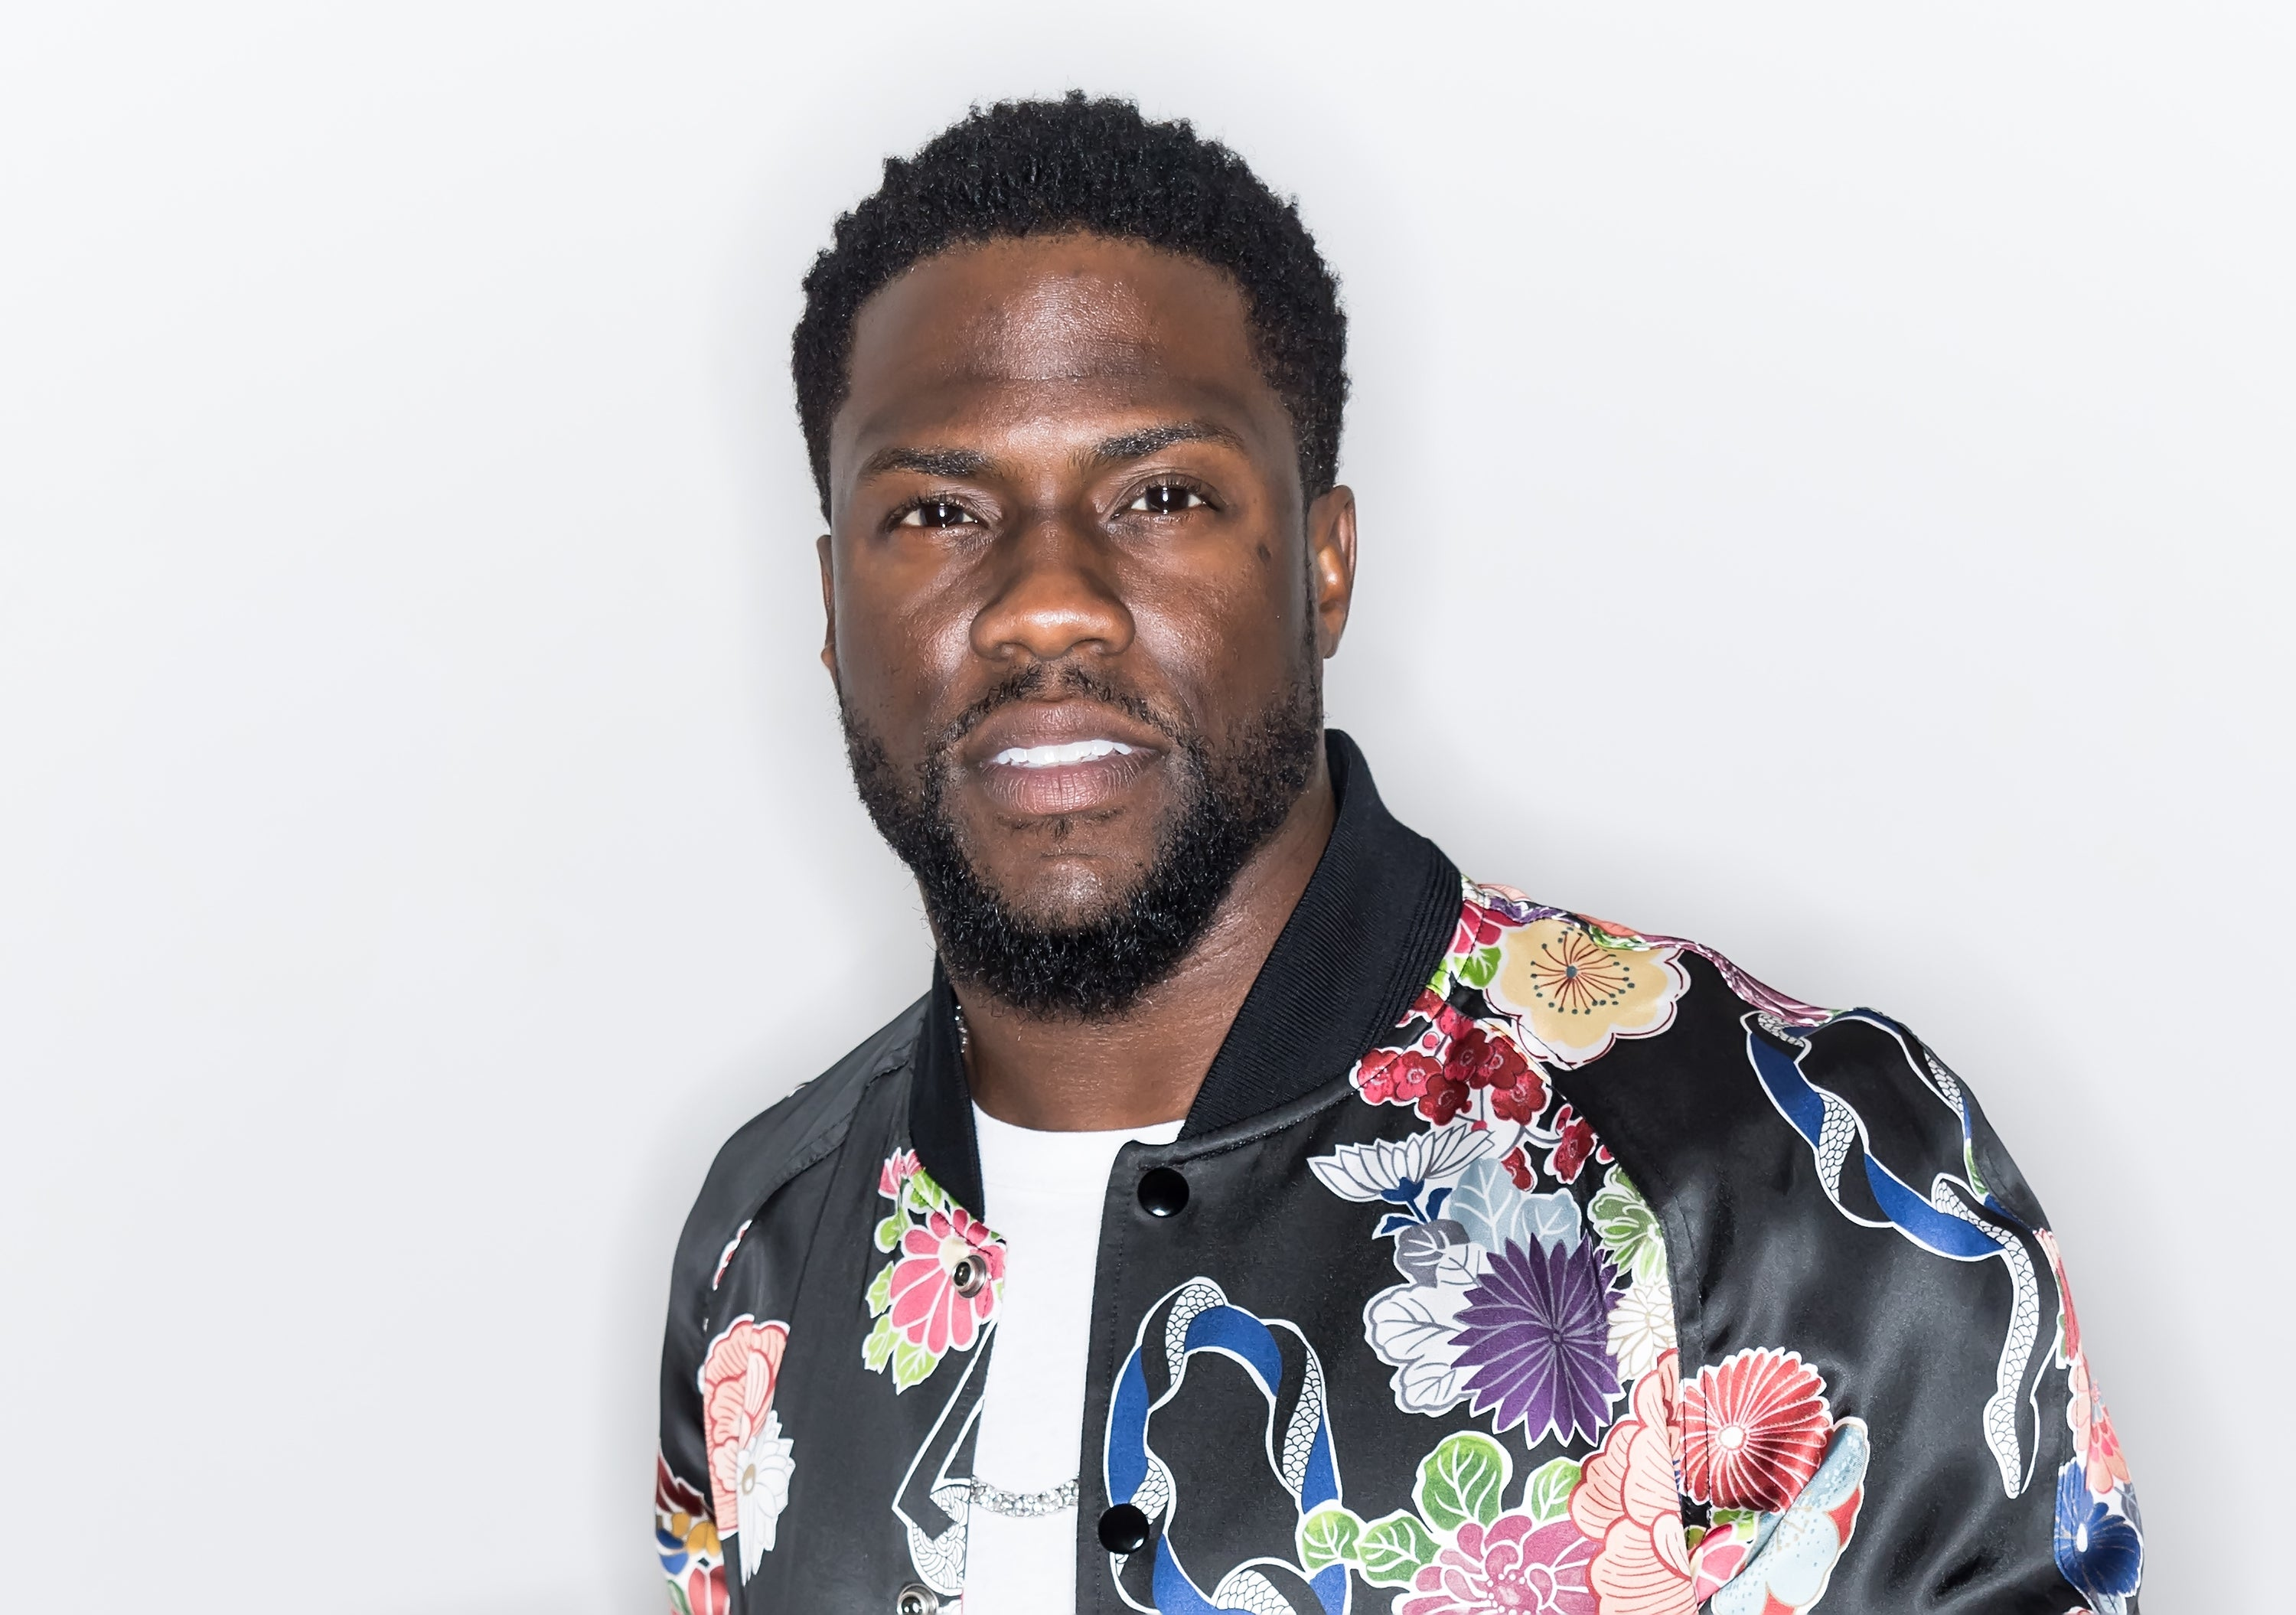 Kevin Hart Laughs Off Cheating Scandal By Using It As Material For New Comedy Tour